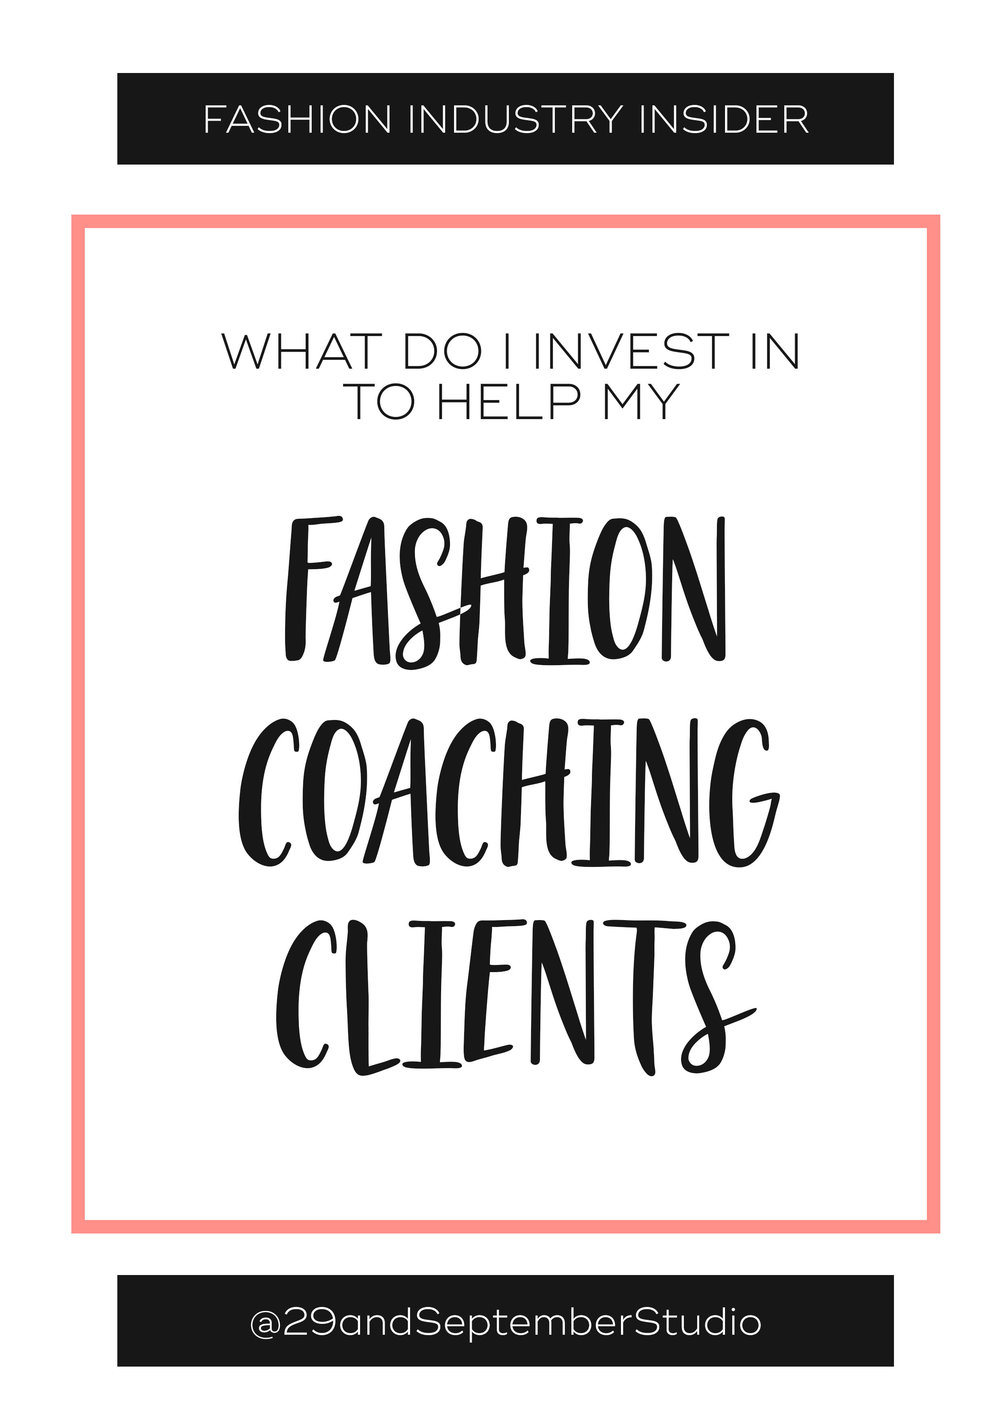 WHAT DOES A FASHION BUSINESS COACH INVEST IN TO HELP THEIR CLIENTS?